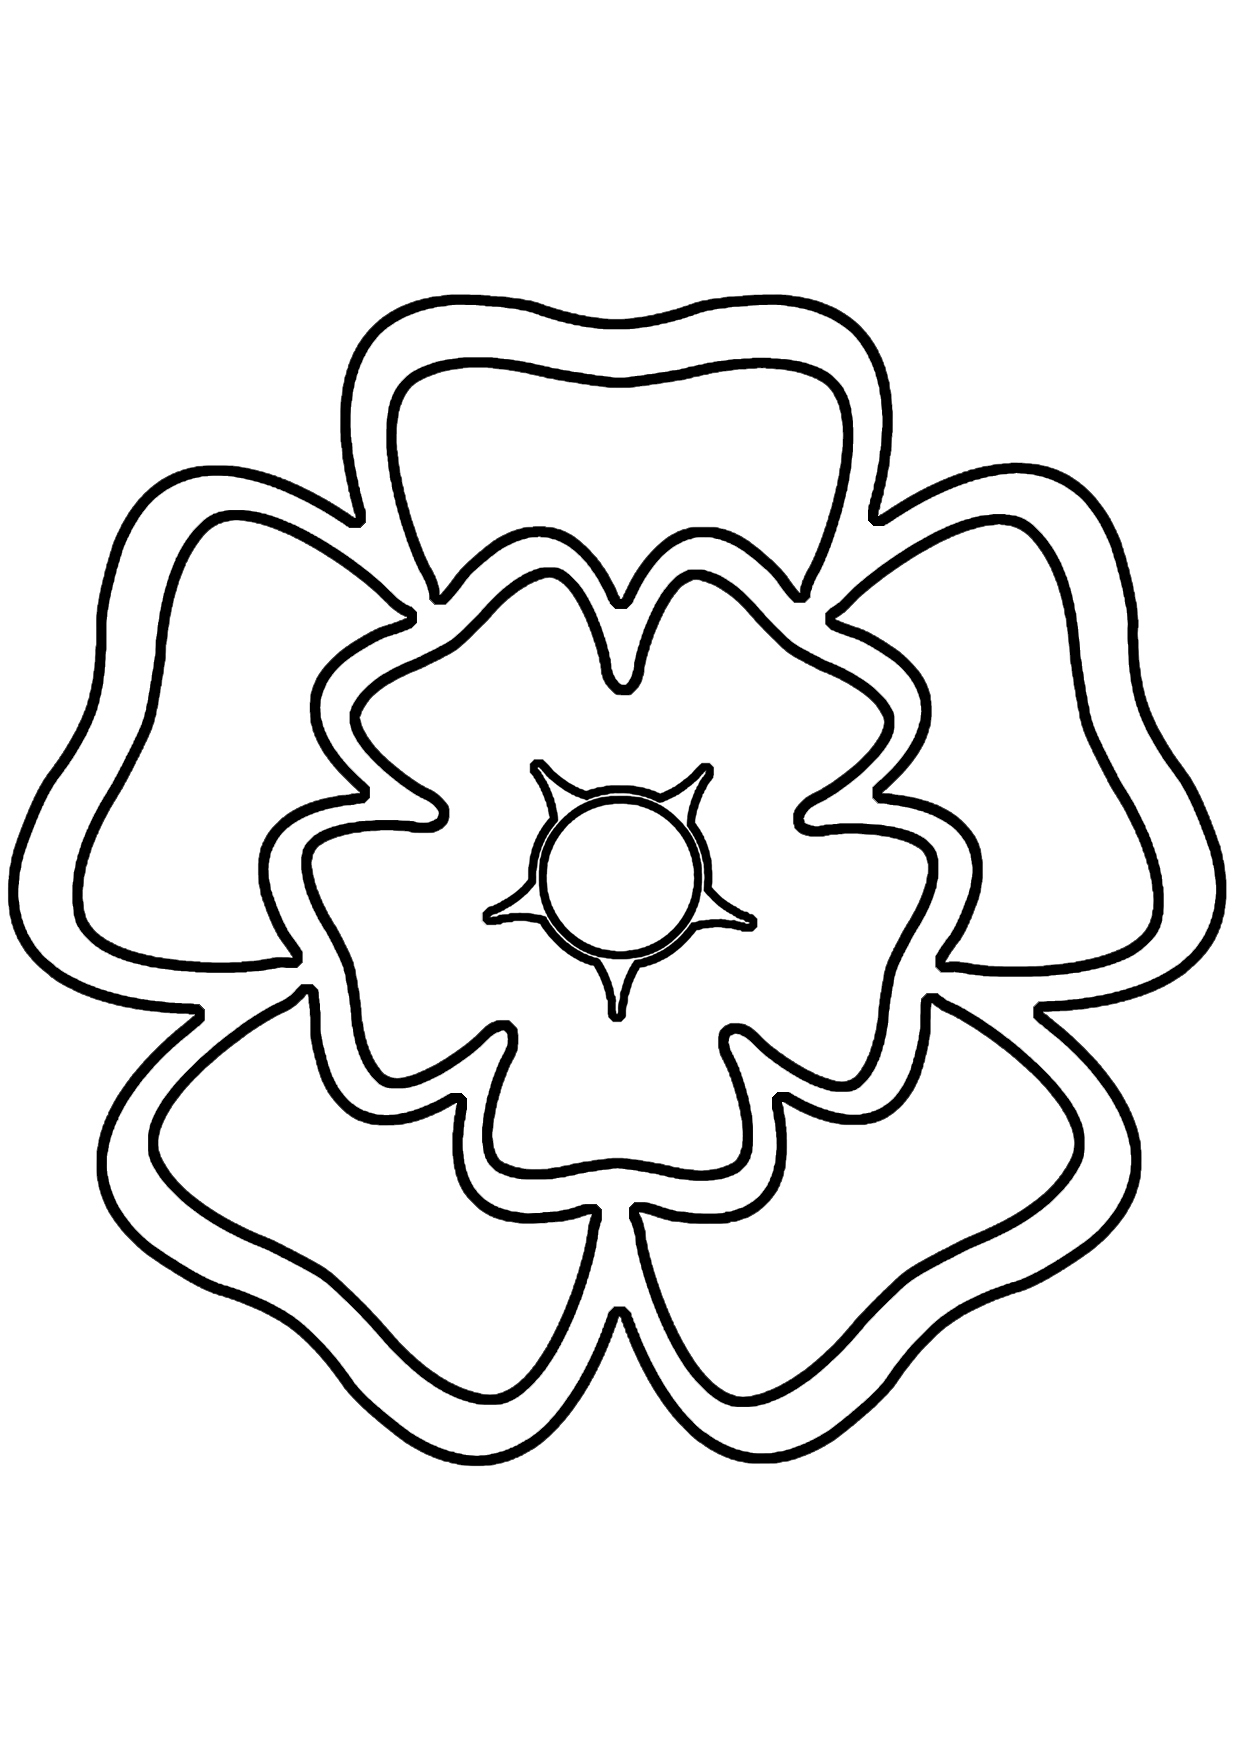 This is an image of Influential Rose Template Printable